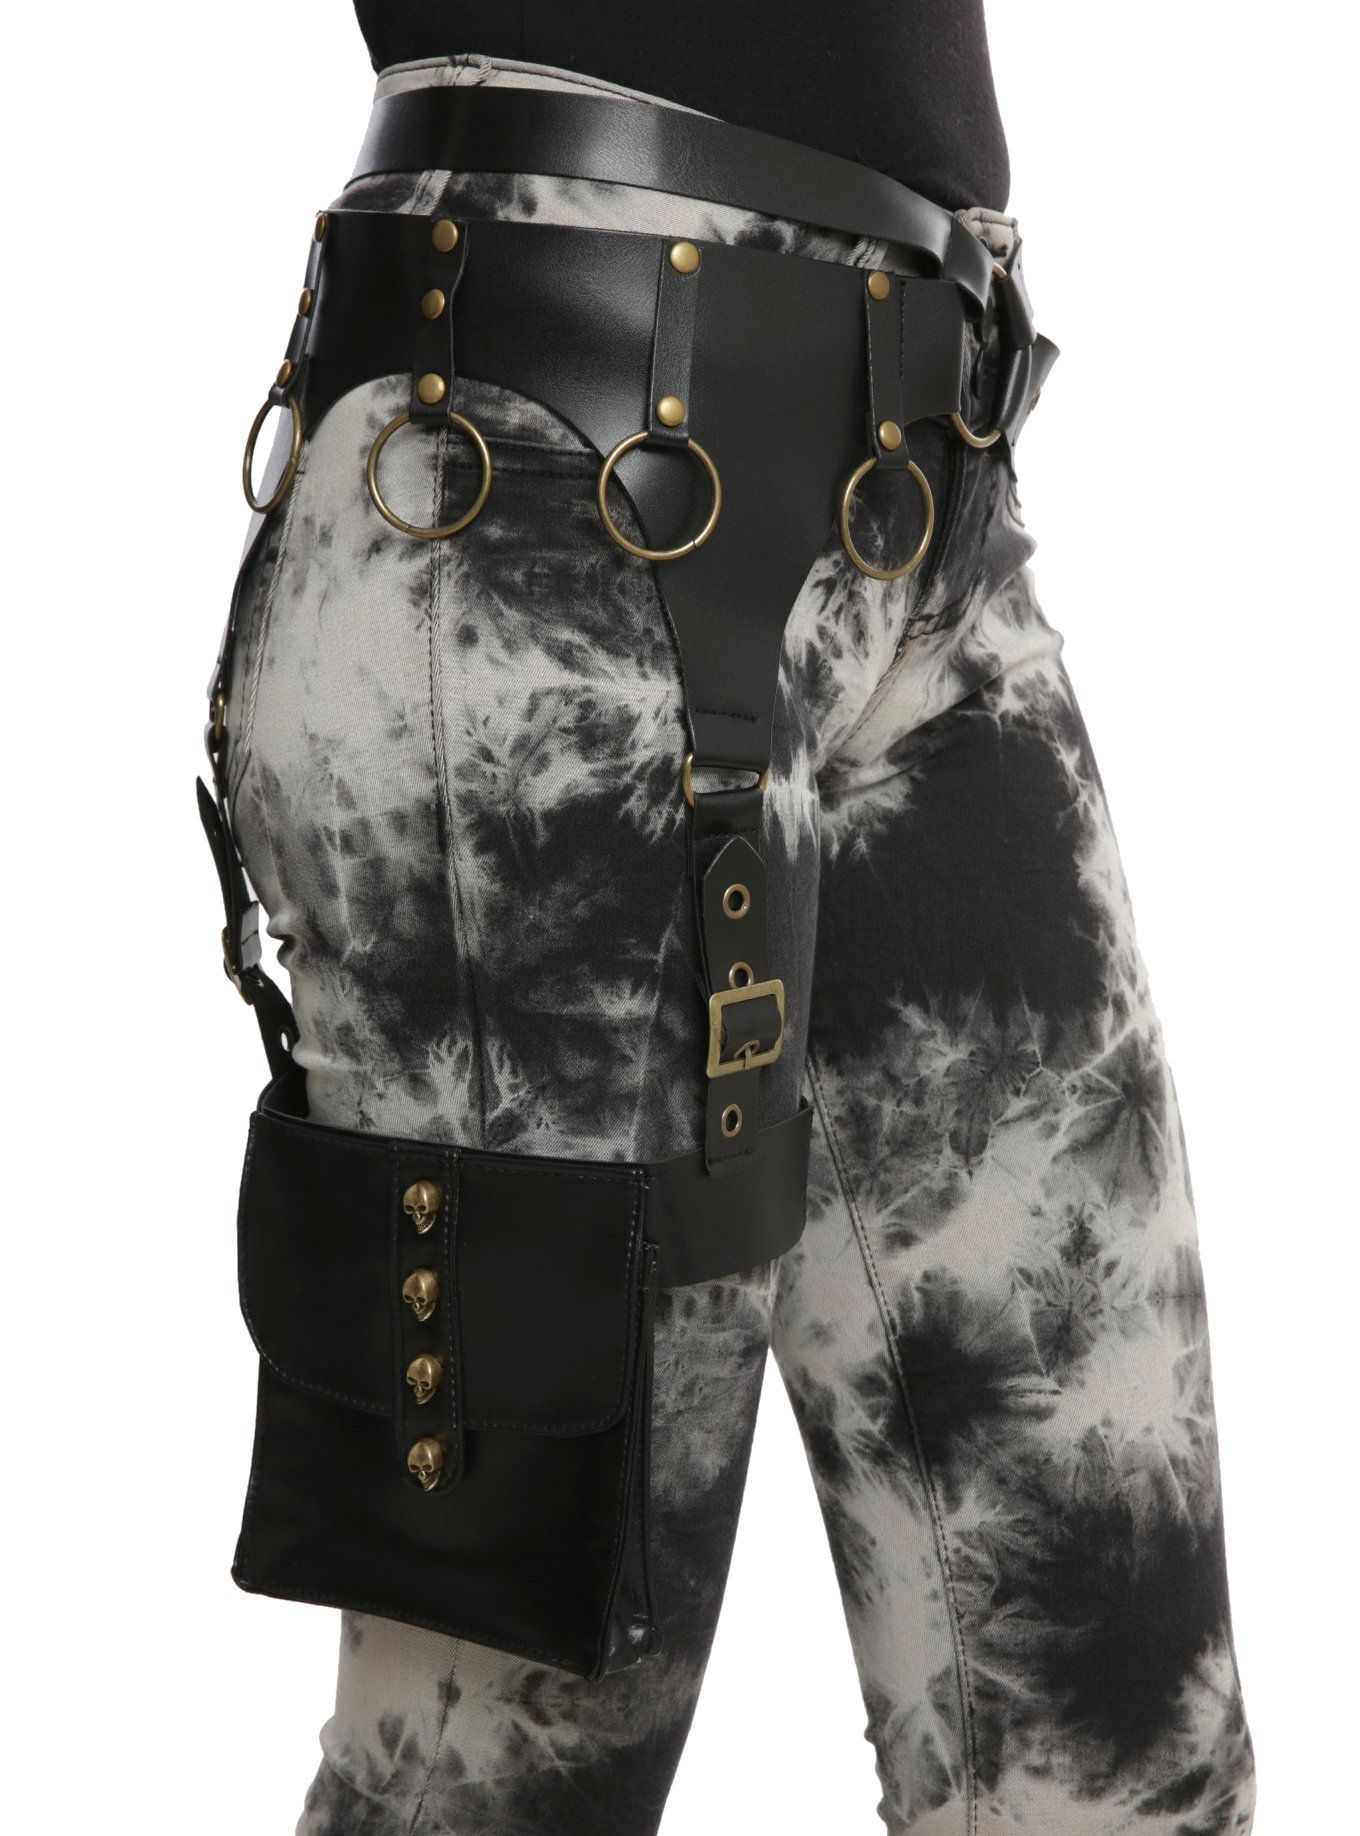 2336e3fadfd The black faux leather leg belt has gold tone brads and belt loops